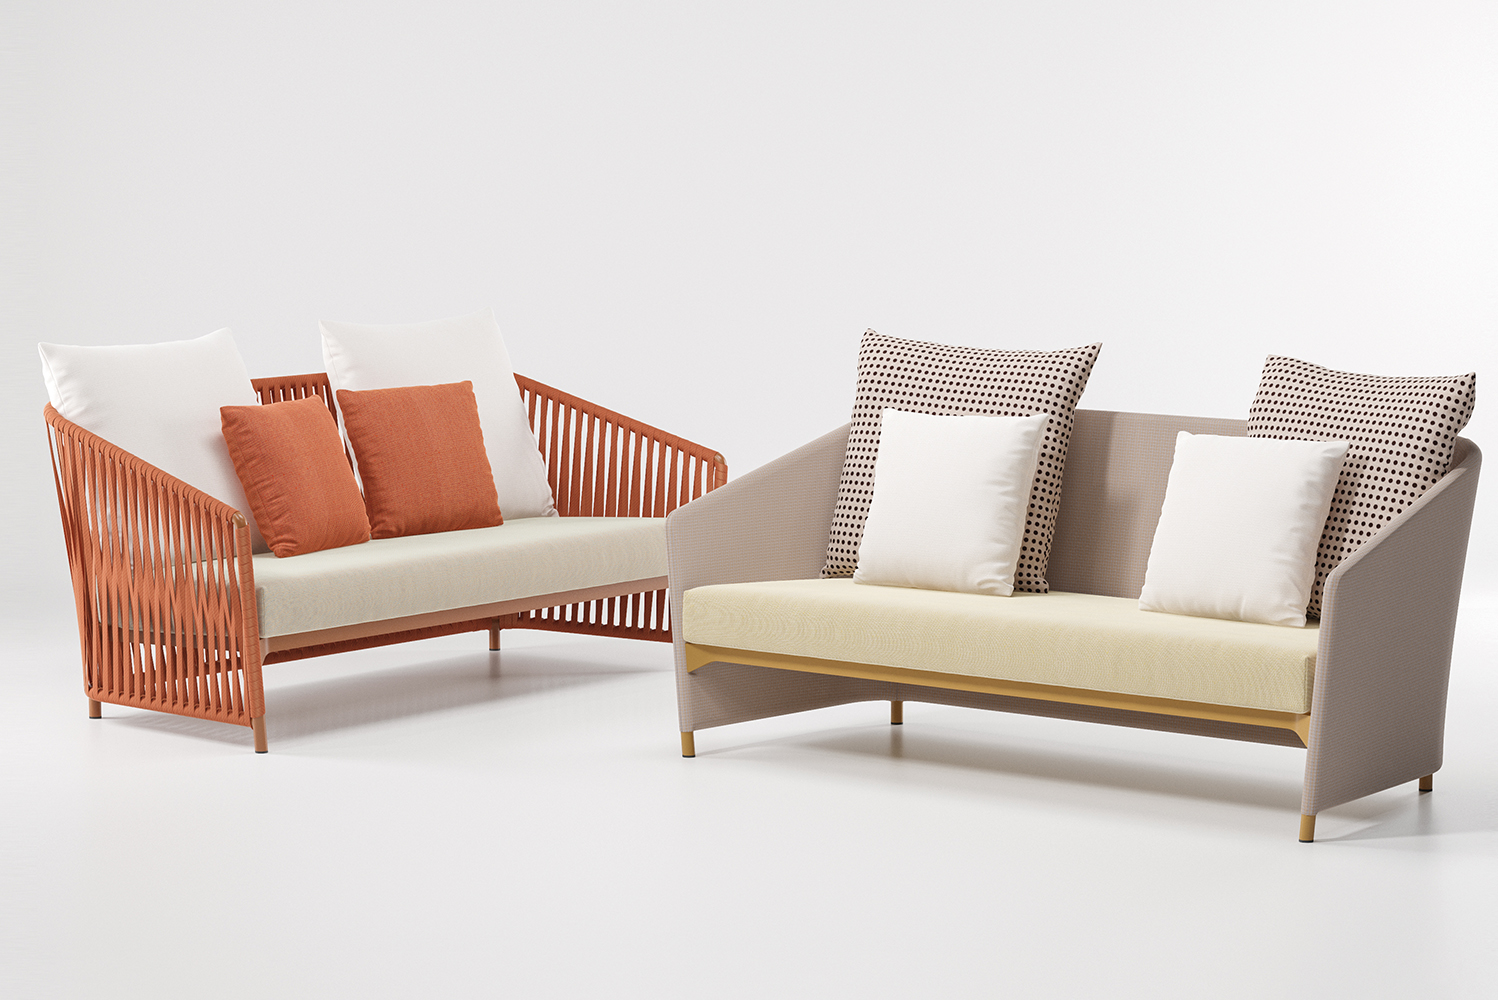 The Bitta lounge is offered in two different finishes, Bela Ropes and Parallel Fabrics, each available in 17 different colors.